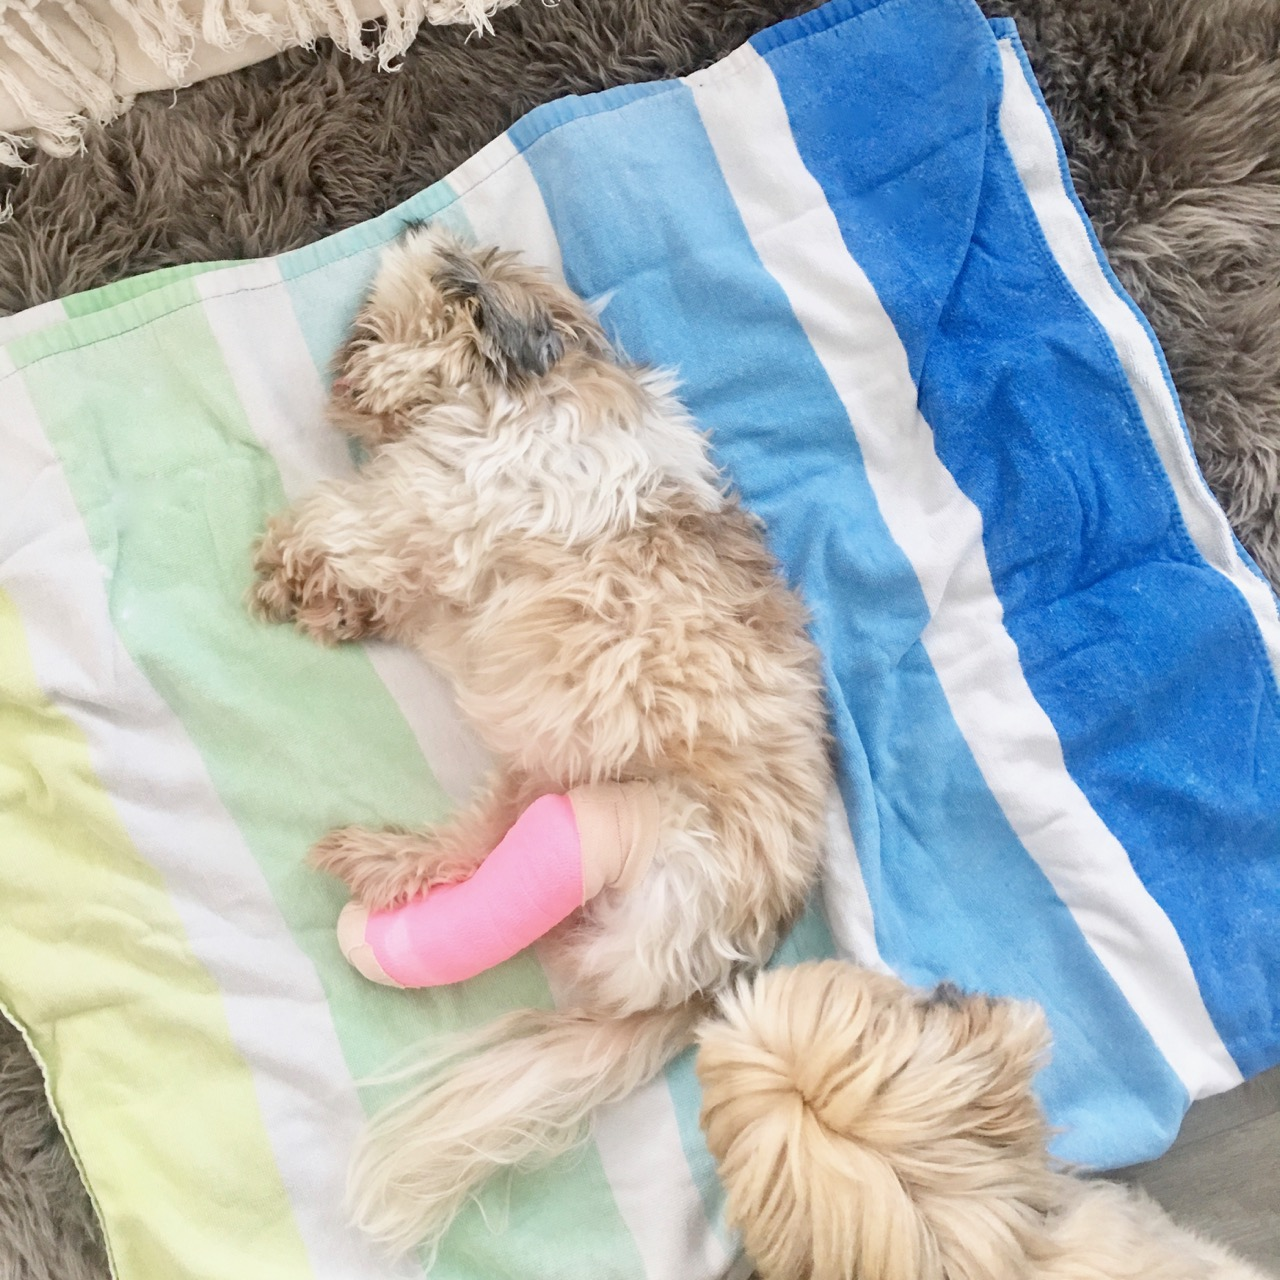 dog with pink cast on leg